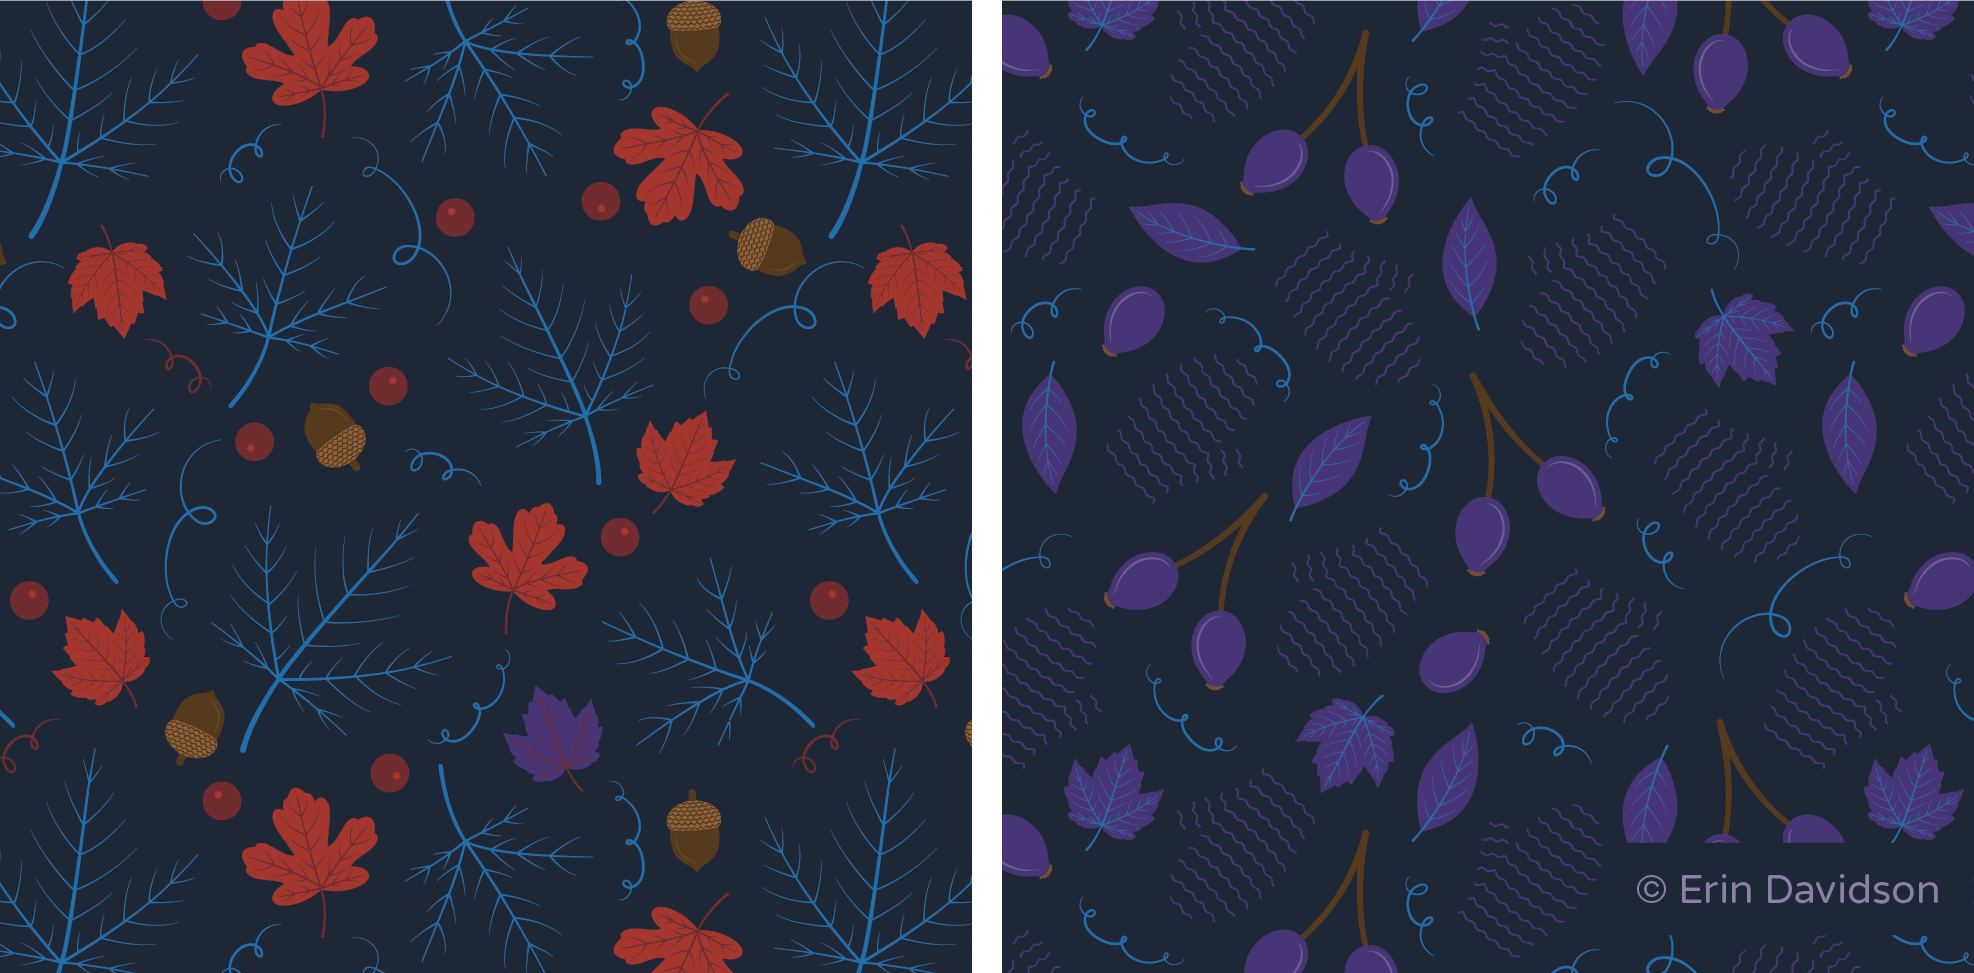 2 secondary prints cropped side by side. 1st pattern features smaller orange and purple maple leaves, acorns, red berries, blue vine motifs and large blue maple leaf veins. 2nd pattern features purple rosehips, purple maple leaves, dark purple striped mittens and blue vine motifs.